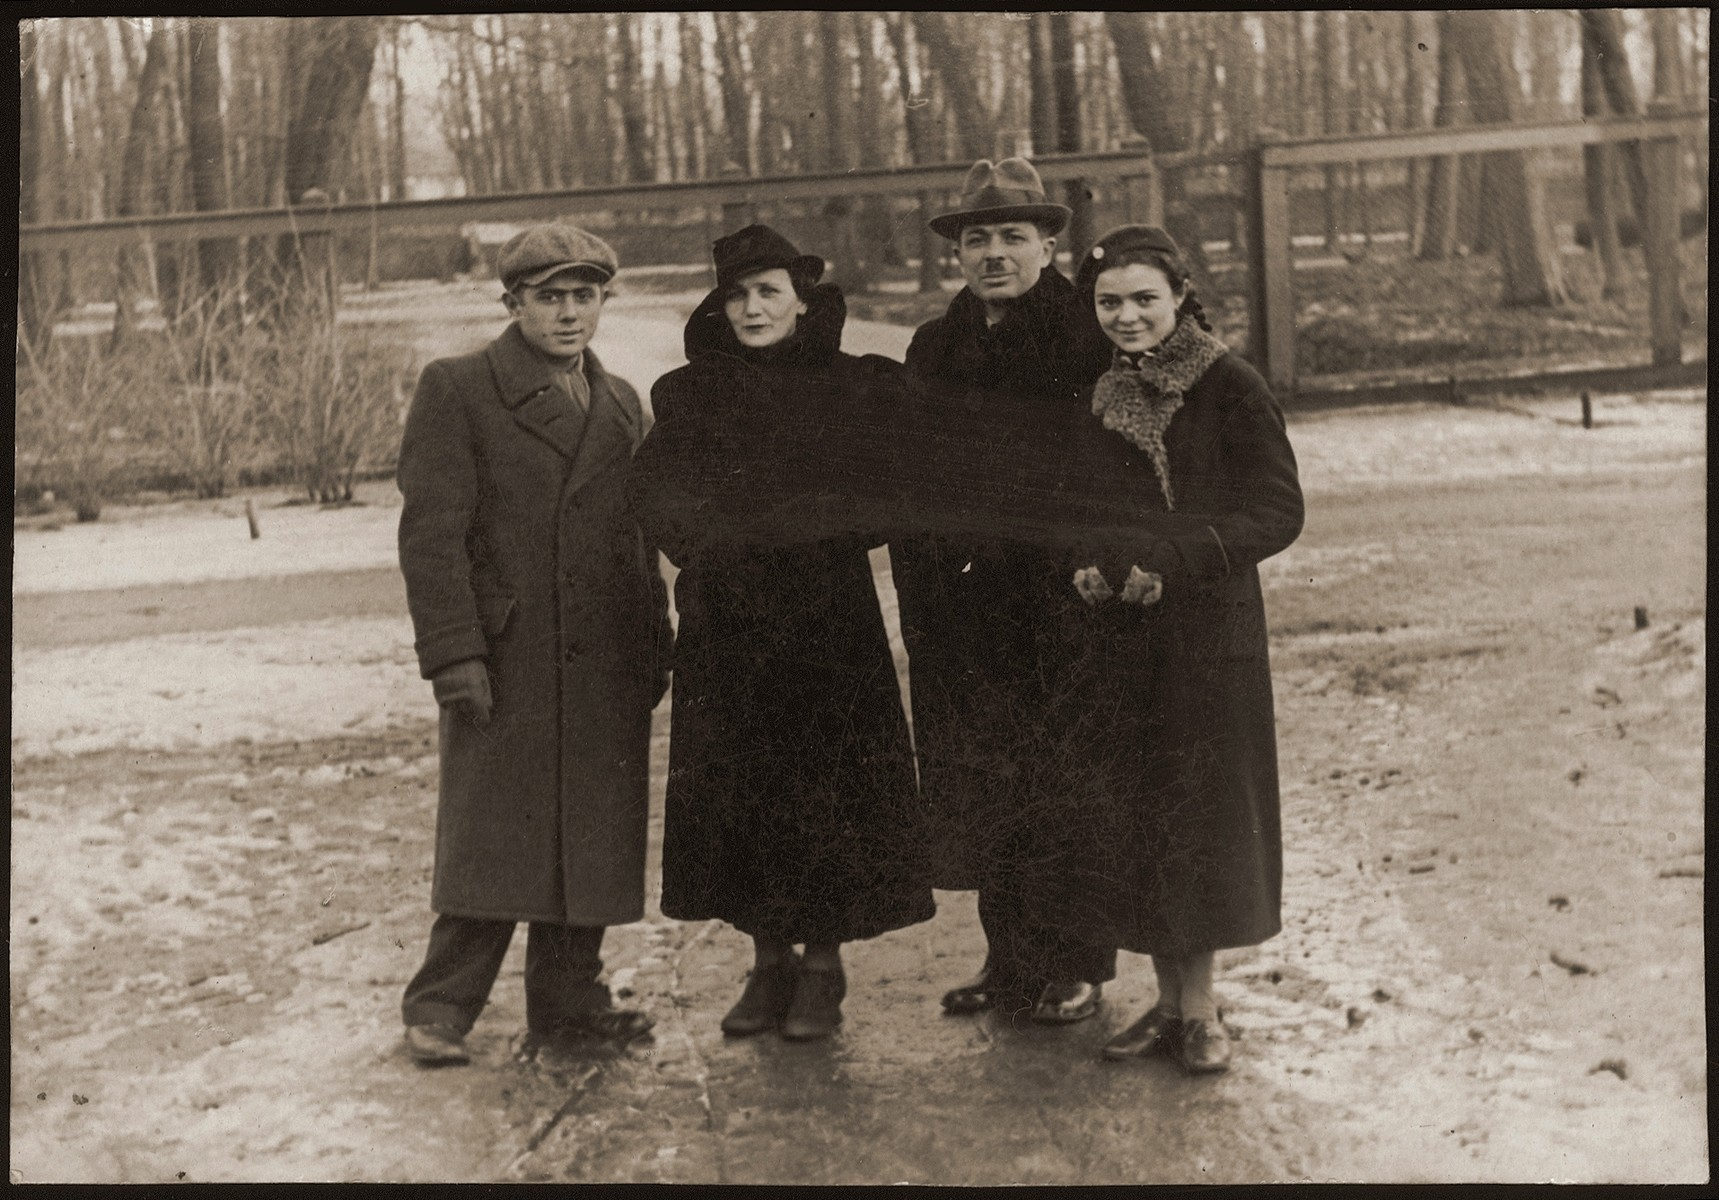 Members of the Orkin family pose outside.  Pictured from left to right are: Meir, Leiba, Kalman and Malka Orkin.